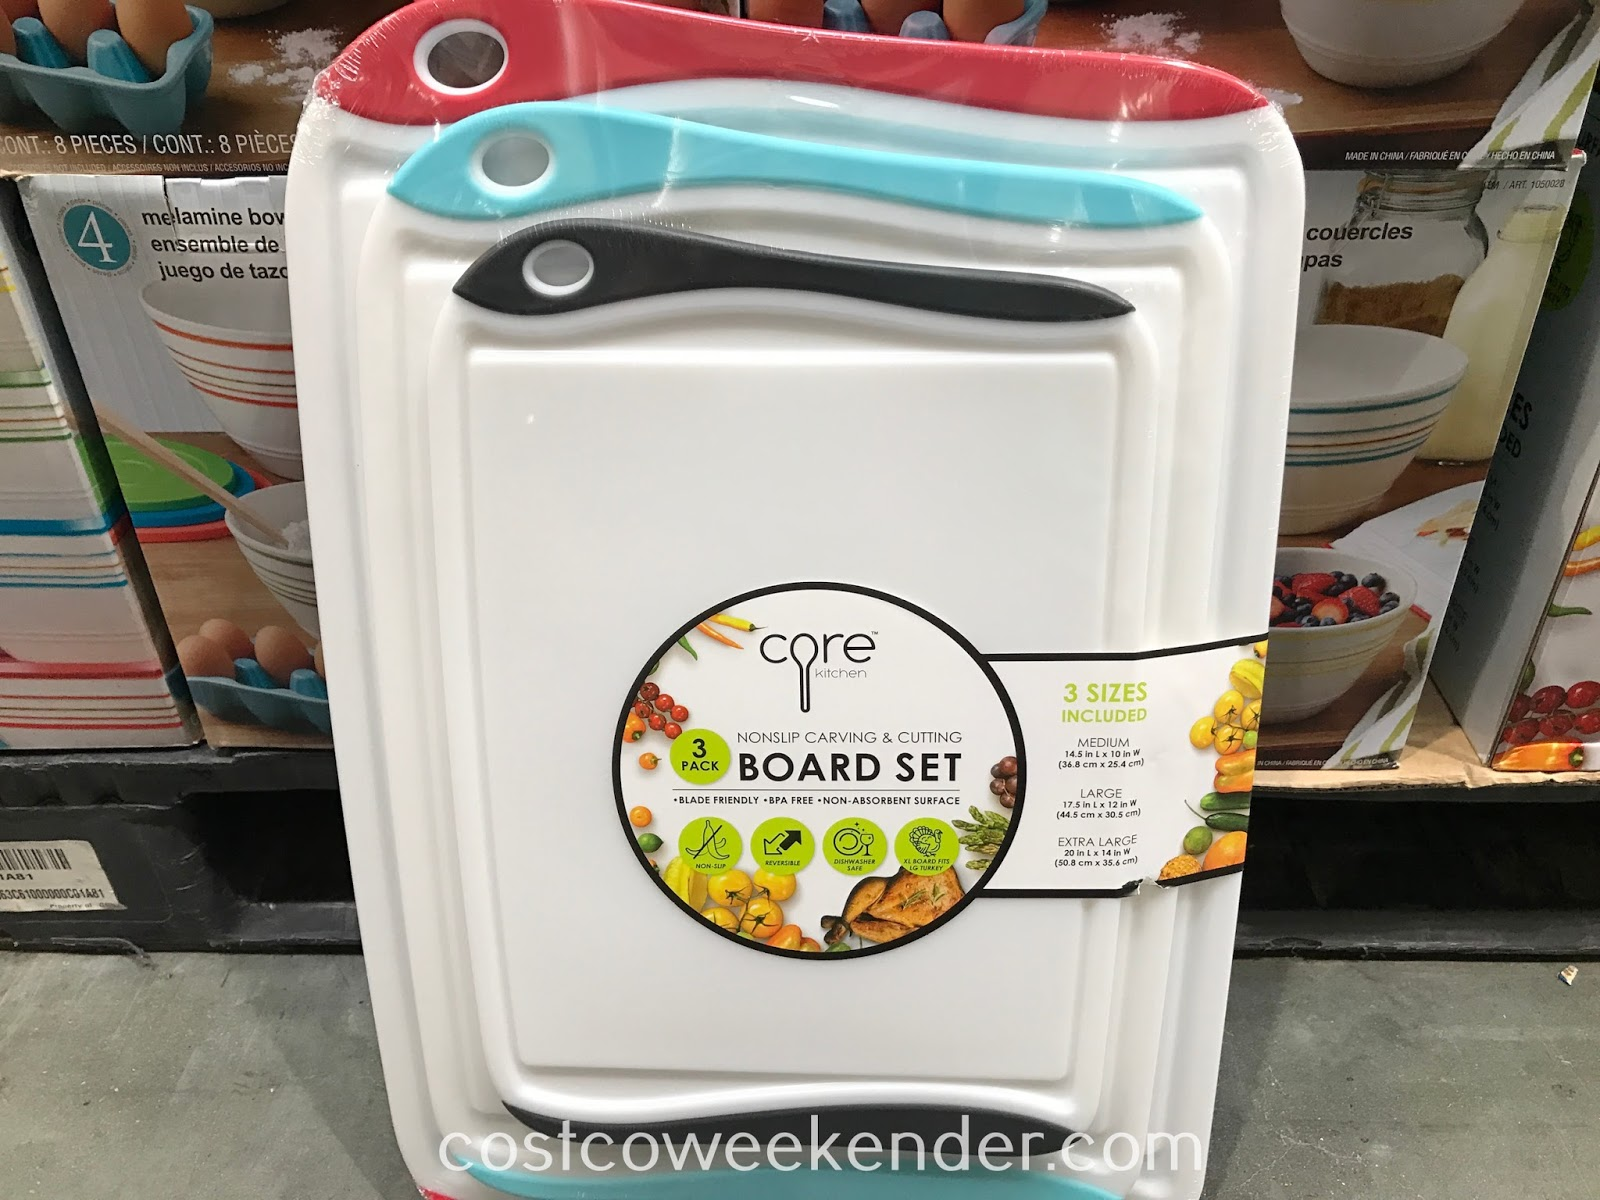 Make food prep easier with the Core Kitchen Nonslip Carving & Cutting Board Set